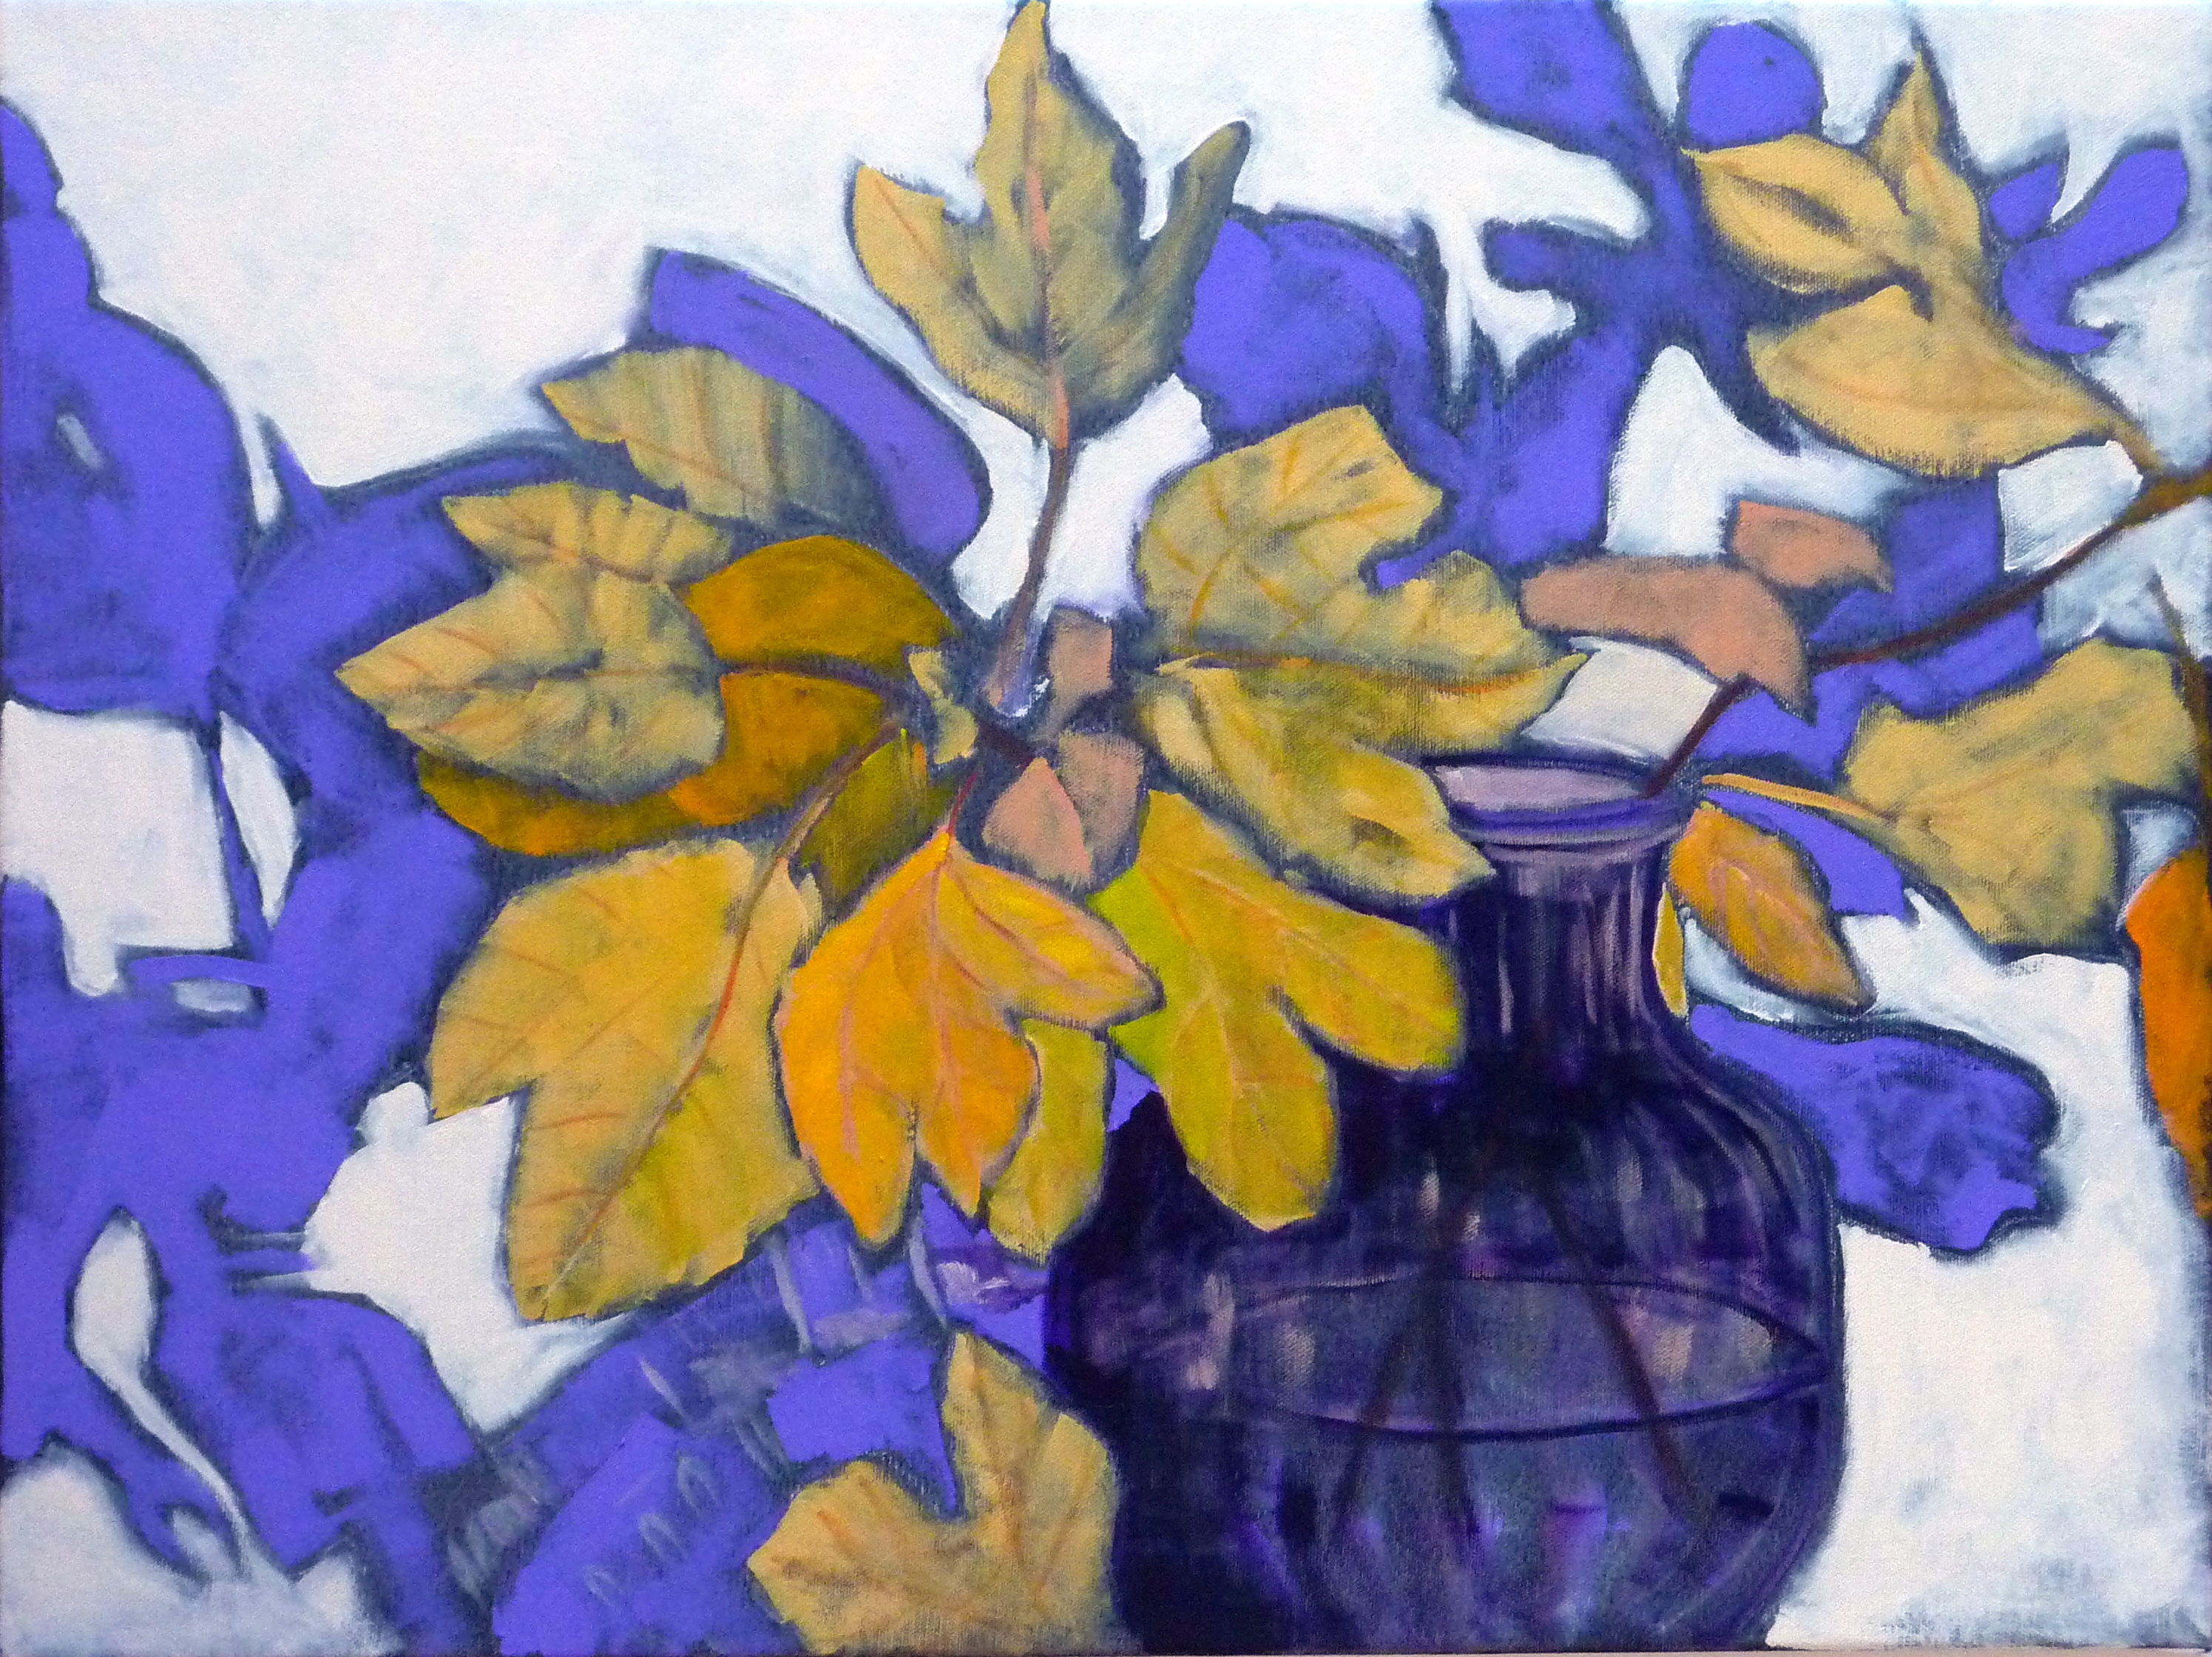 Autumn Leaves in Glass Vase